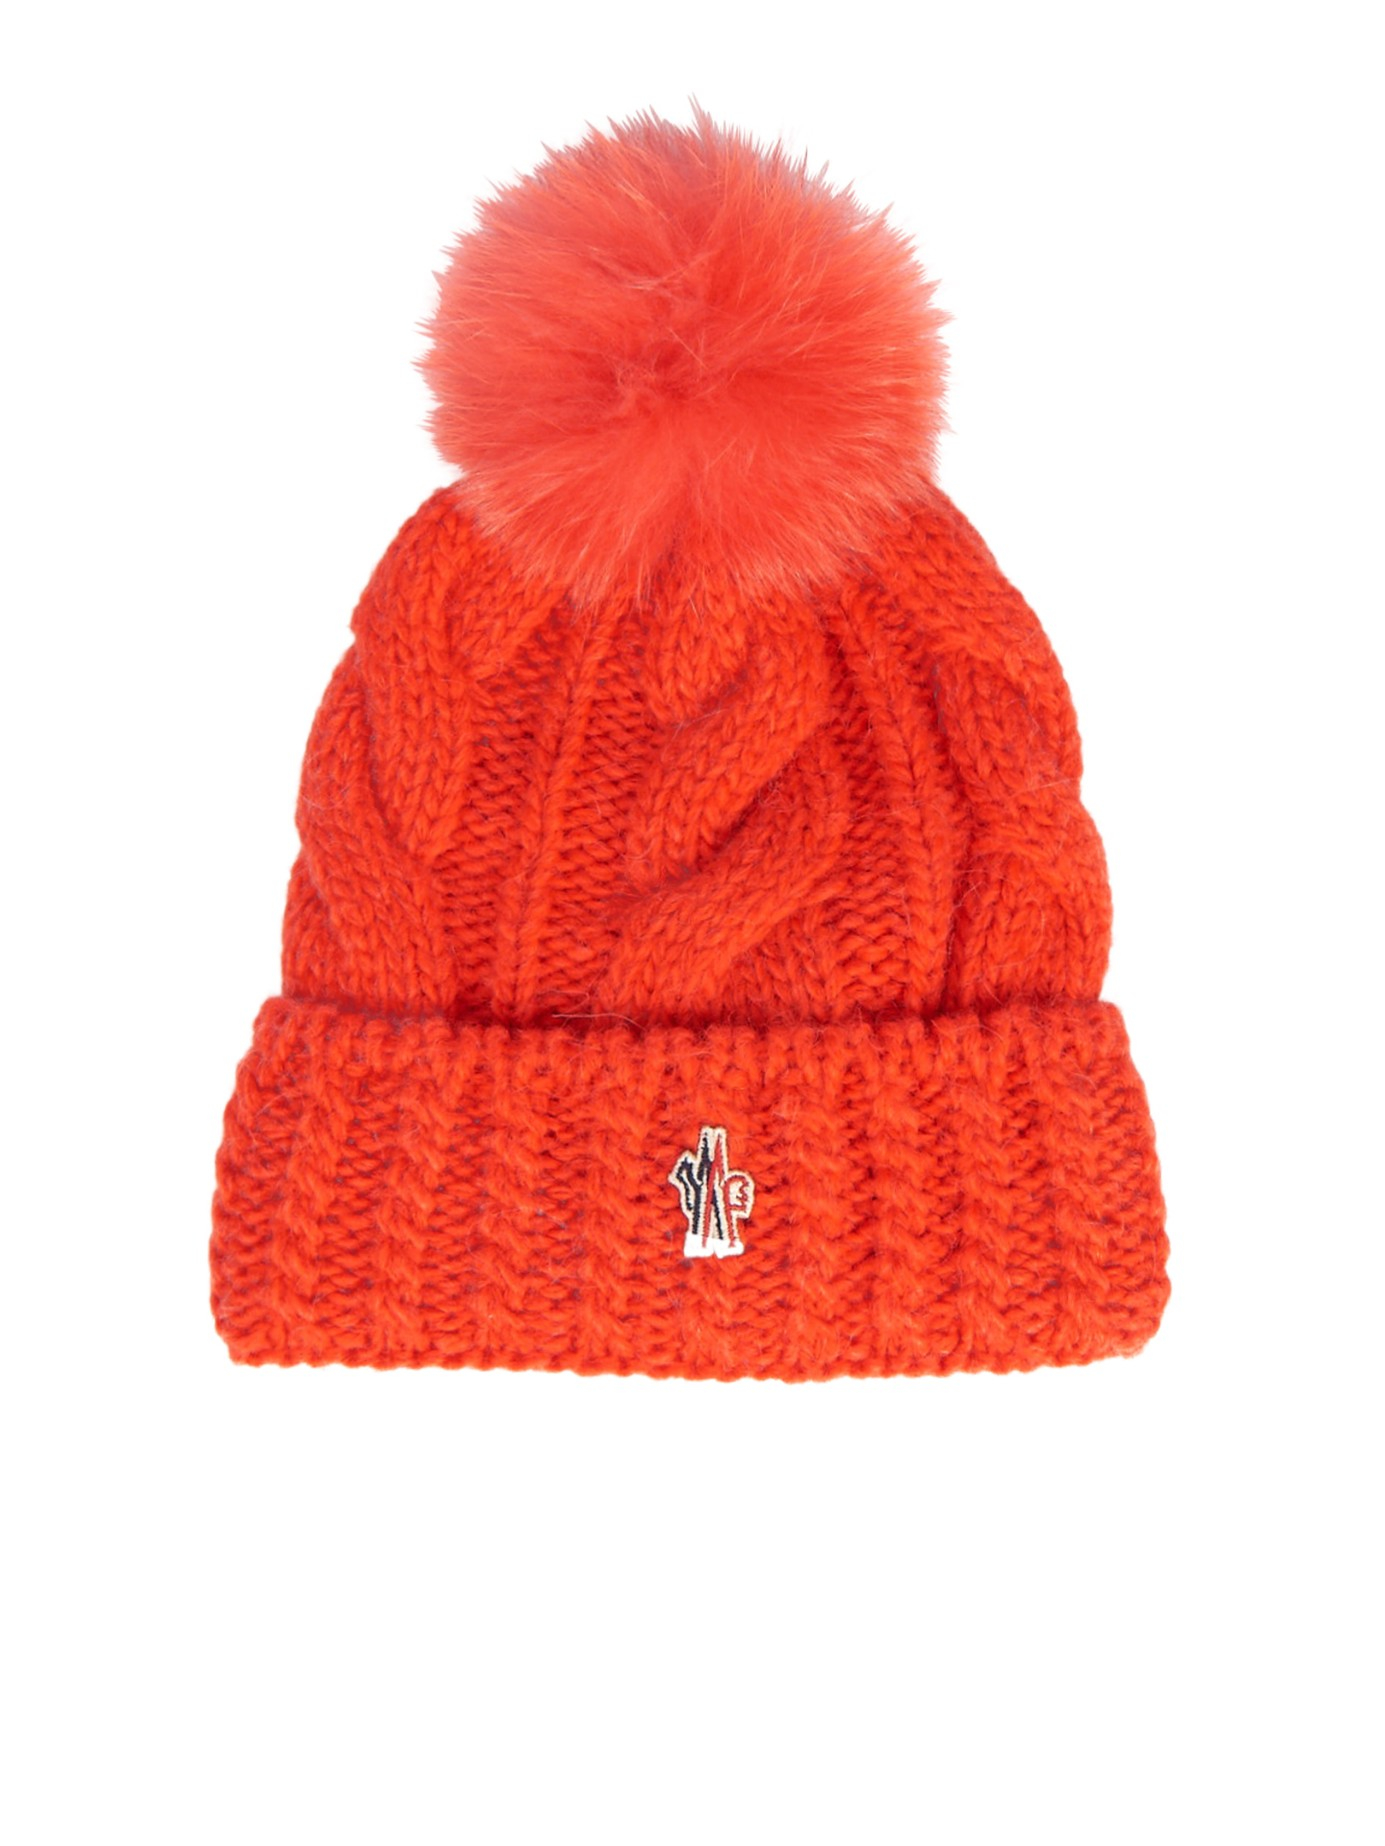 Lyst - Moncler Grenoble Mink-fur Pompom Knitted Beanie Hat in Orange de487a954c83